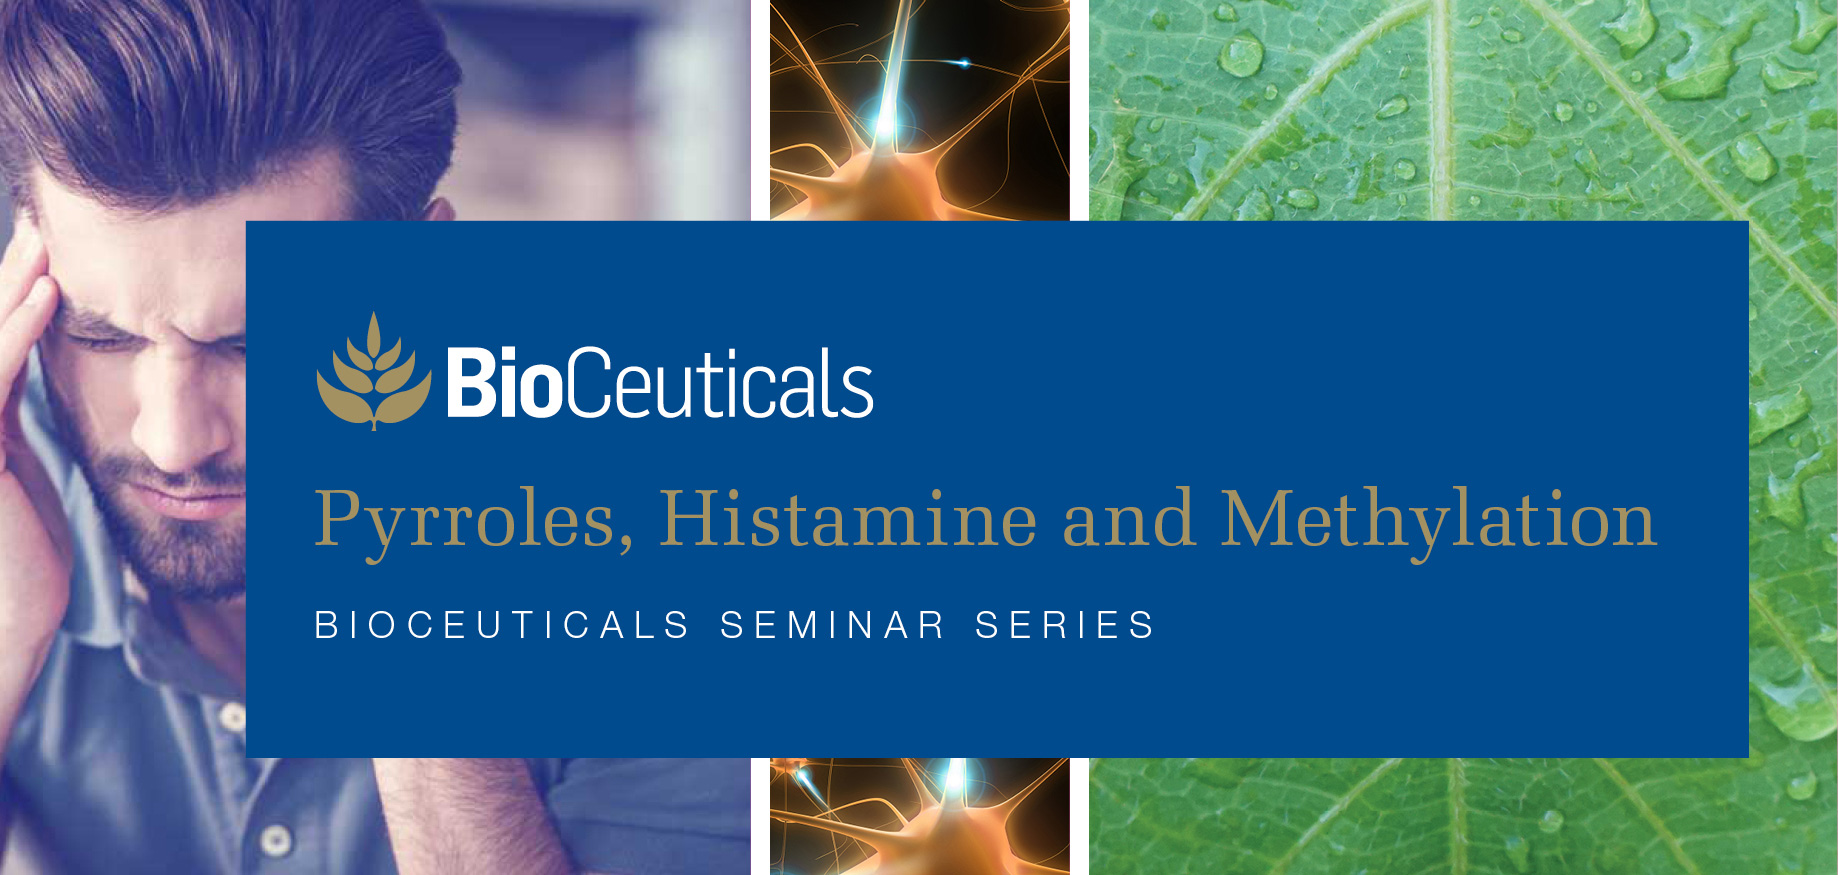 March 2019 | BioCeuticals Pyrroles, Histamine and Methylation